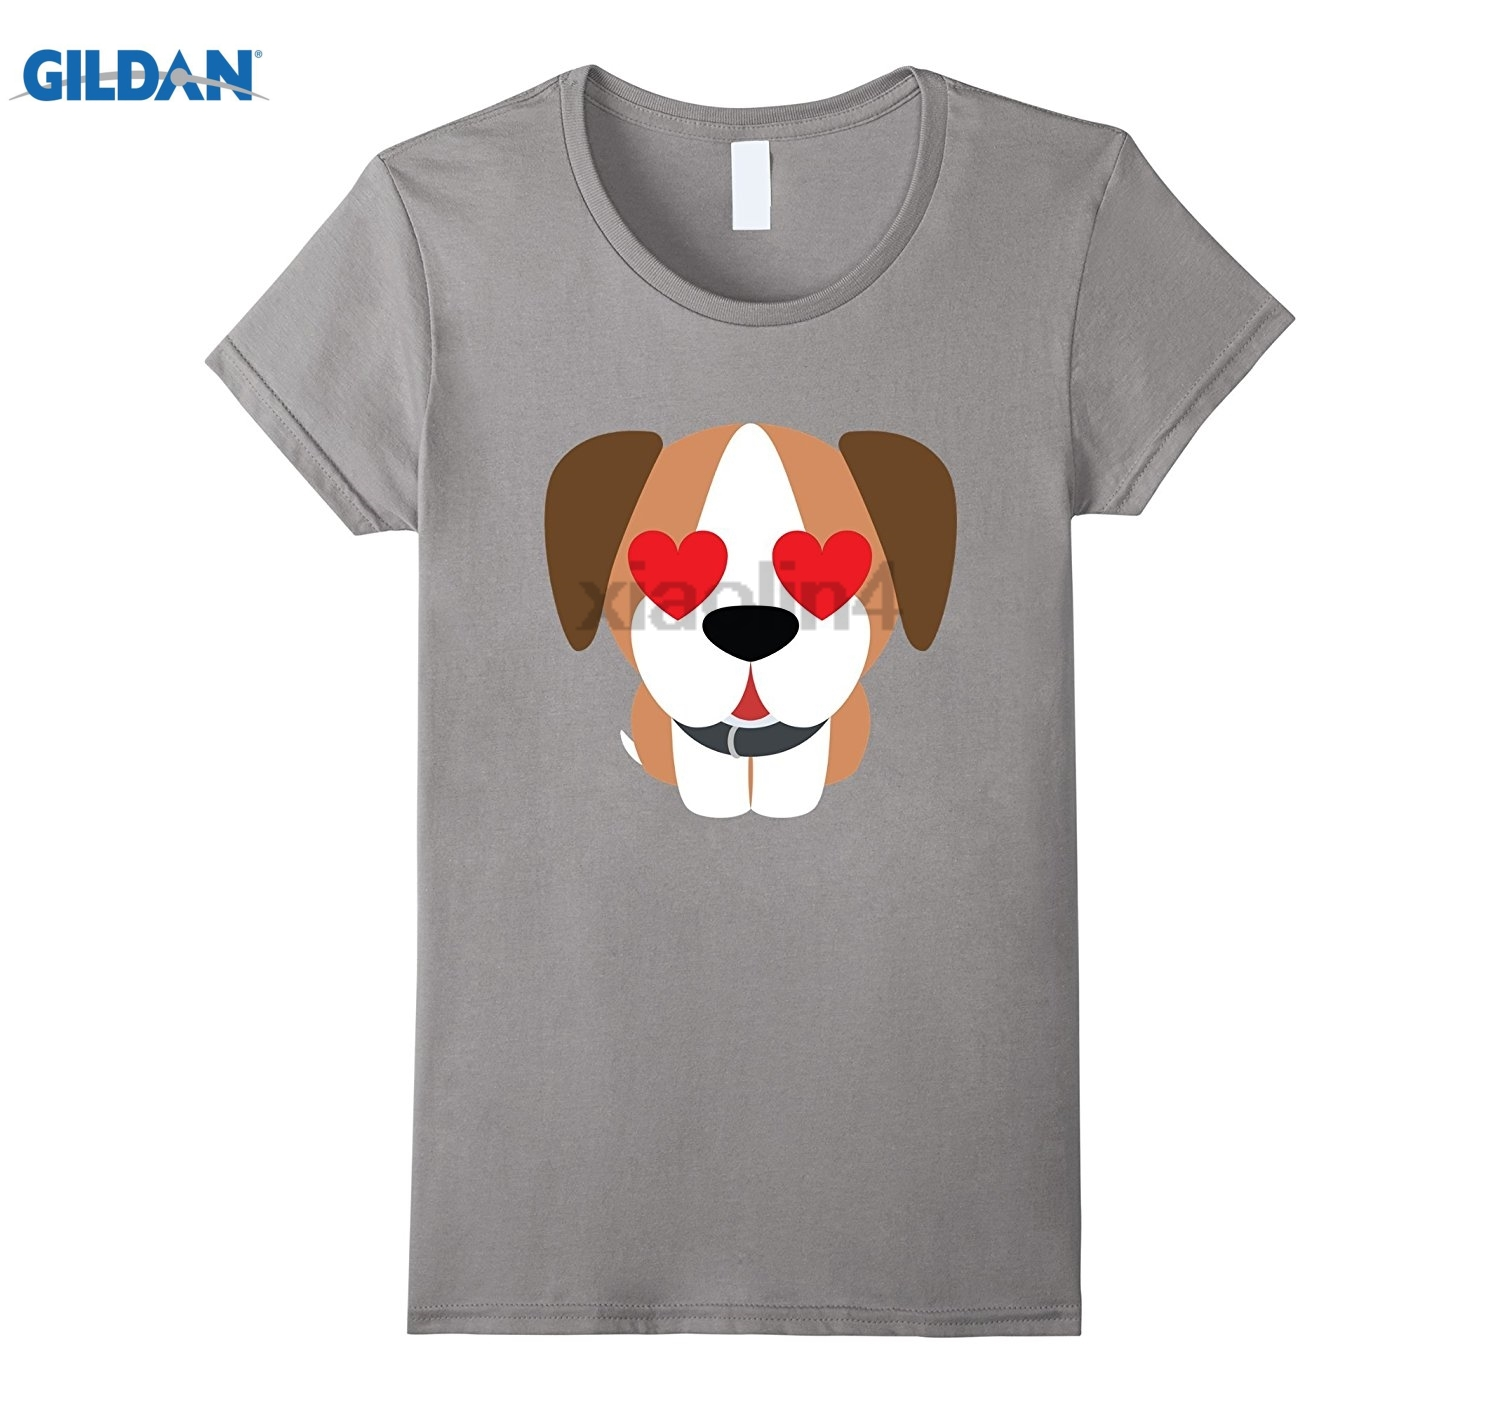 GILDAN Boxer Dog Emoji Heart & Love Eye Shirt T-Shirt Tee Summer novelty cartoon T-shirt glasses Womens T-shirt